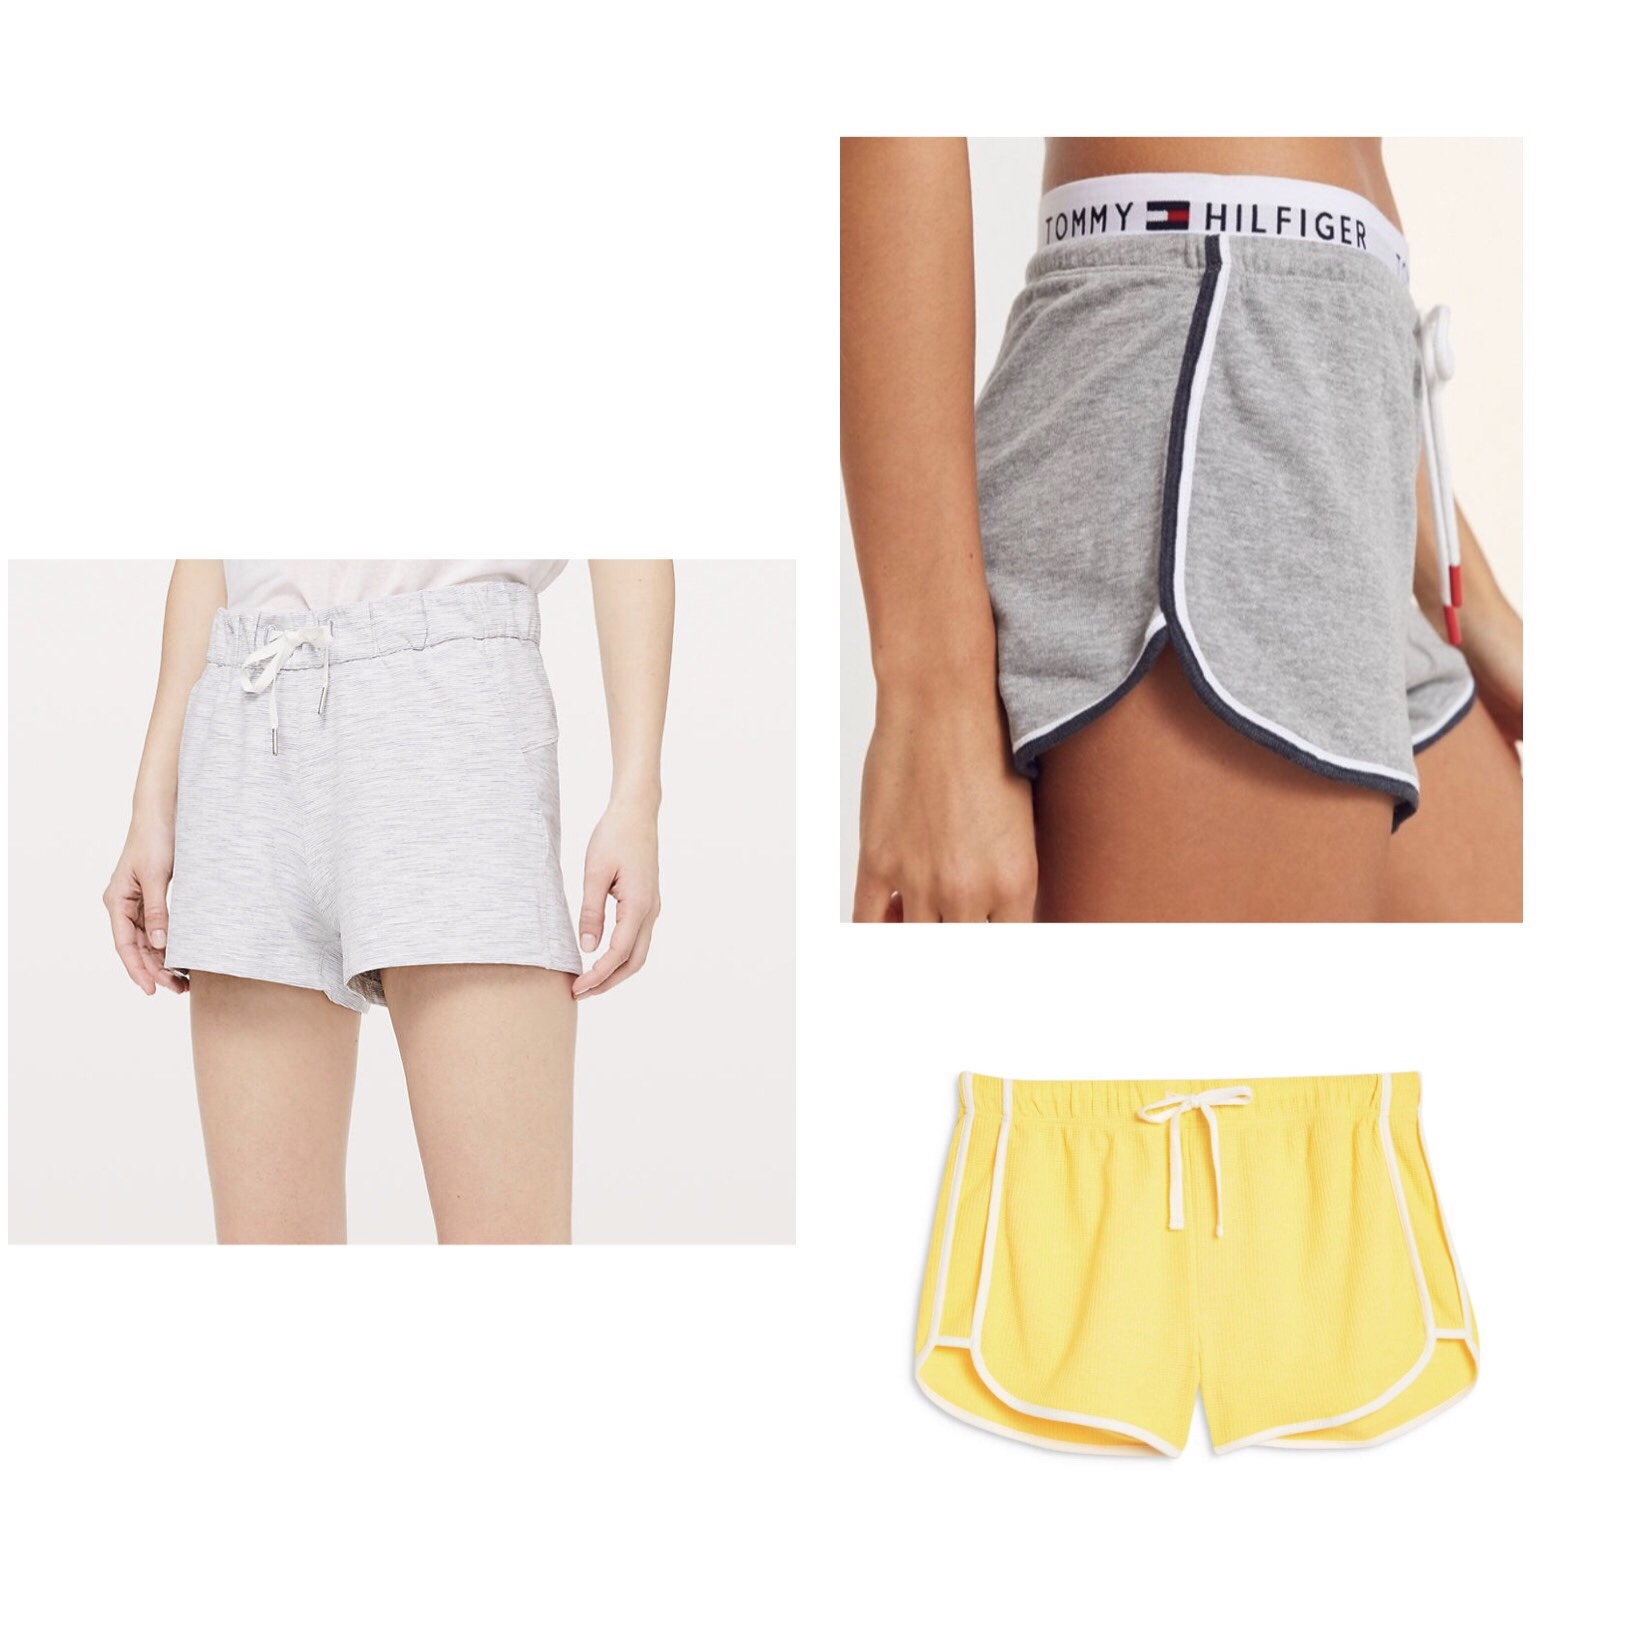 (Clockwise)  1.  Lululemon On The Fly Short  - $58  2.  Tommy Hilfiger UO Retro Shorts  - $39  3.  Topshop Waffle Weave Runner Shorts  - $18